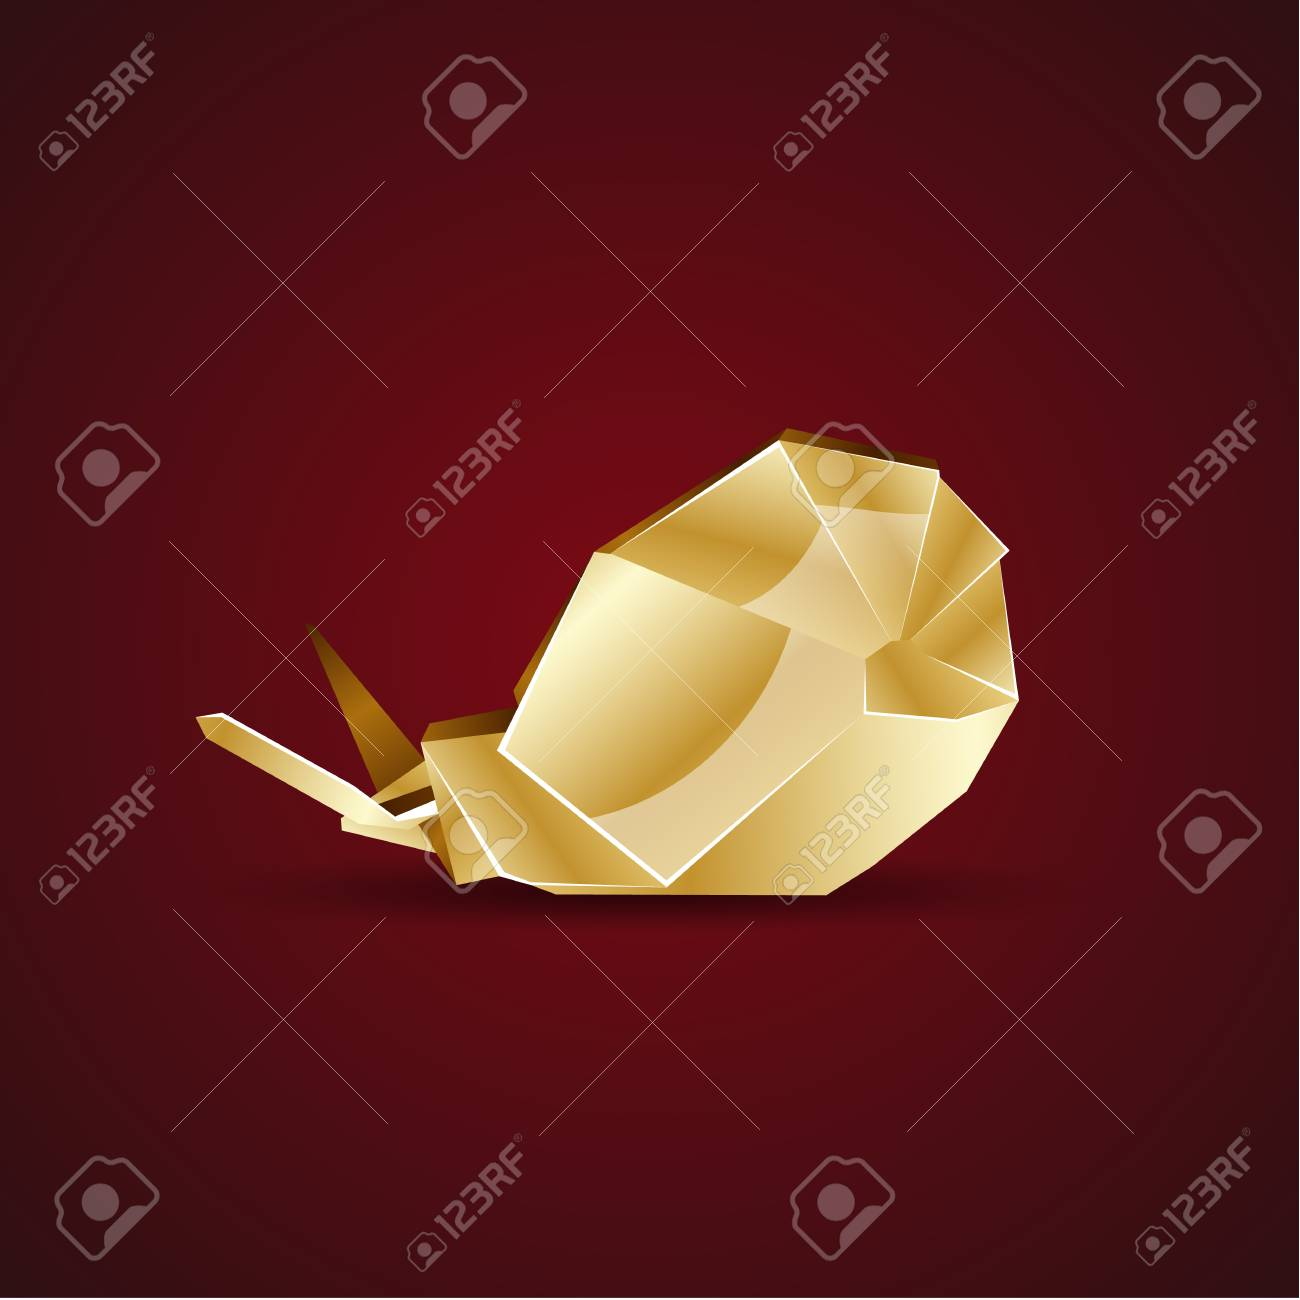 How to Make an Origami Snail: 12 Steps (with Pictures) - wikiHow | 1300x1300